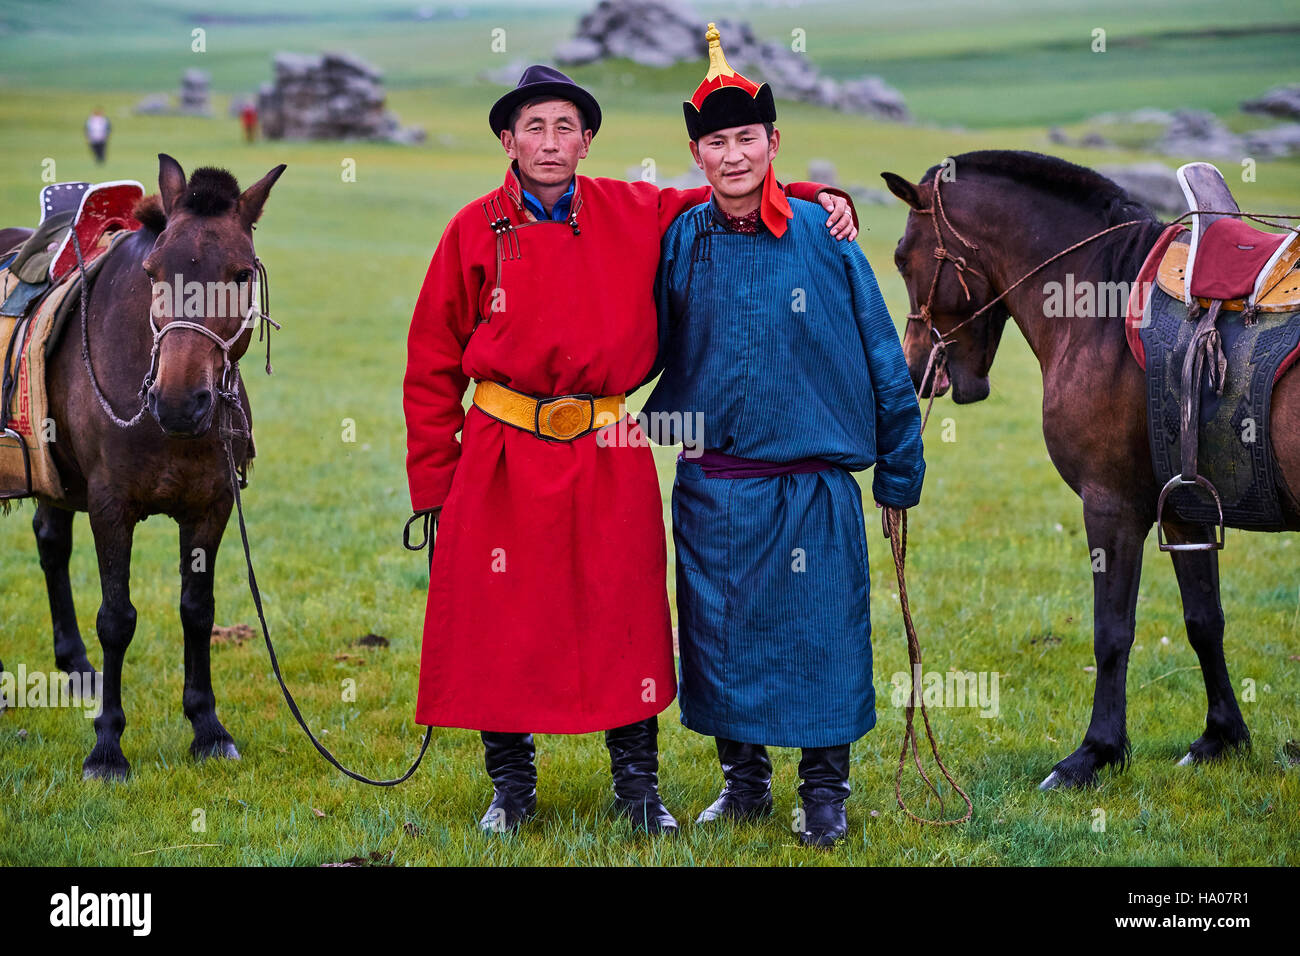 Mongolia, Arkhangai province, Mongolian horserider in the steppe - Stock Image